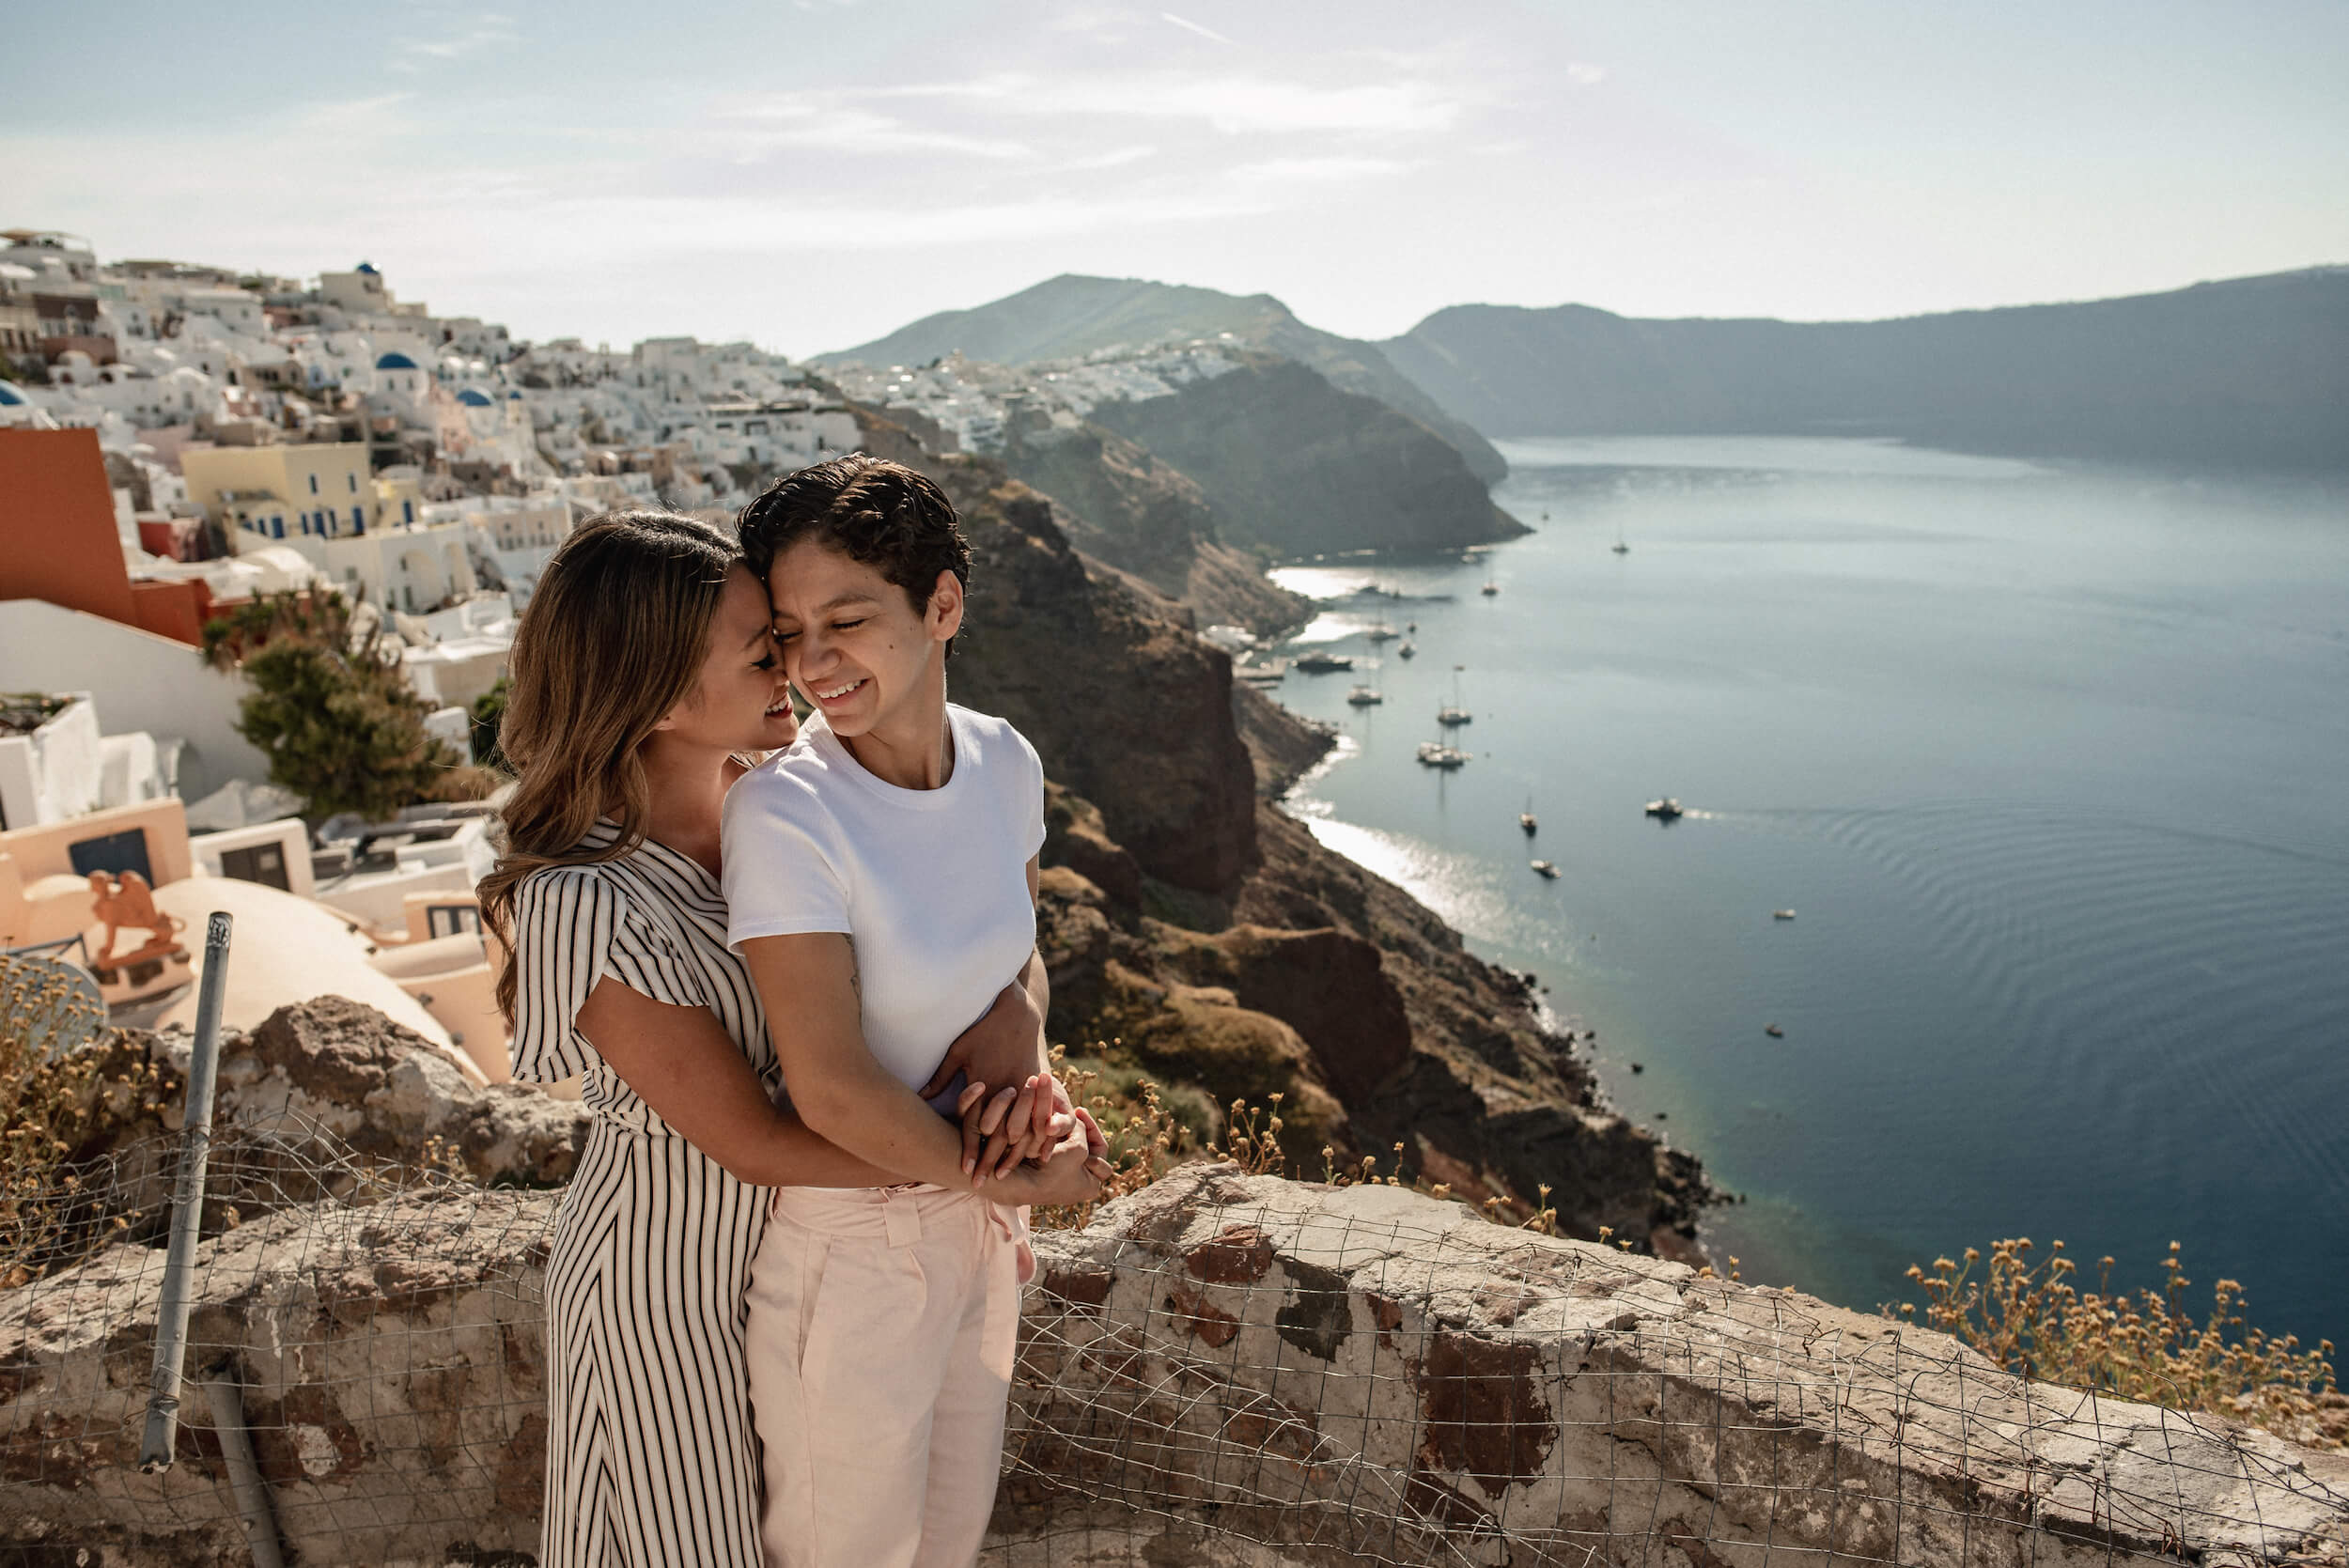 Two lovers embrace in front of the iconic blue domes in Santorini, Greece.